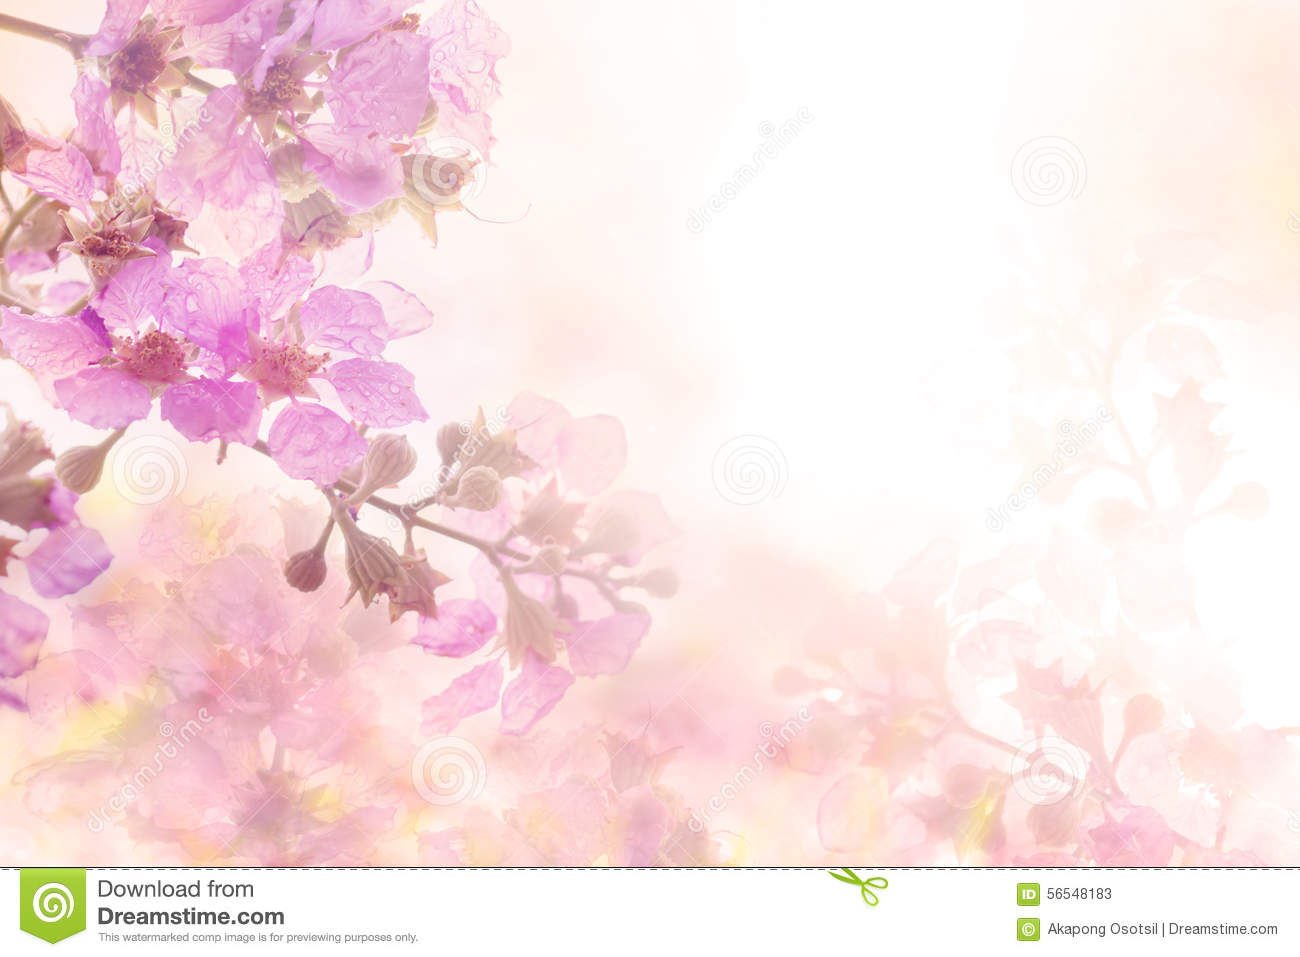 The abstract soft sweet pink flower background from Plumeria frangipani flowers